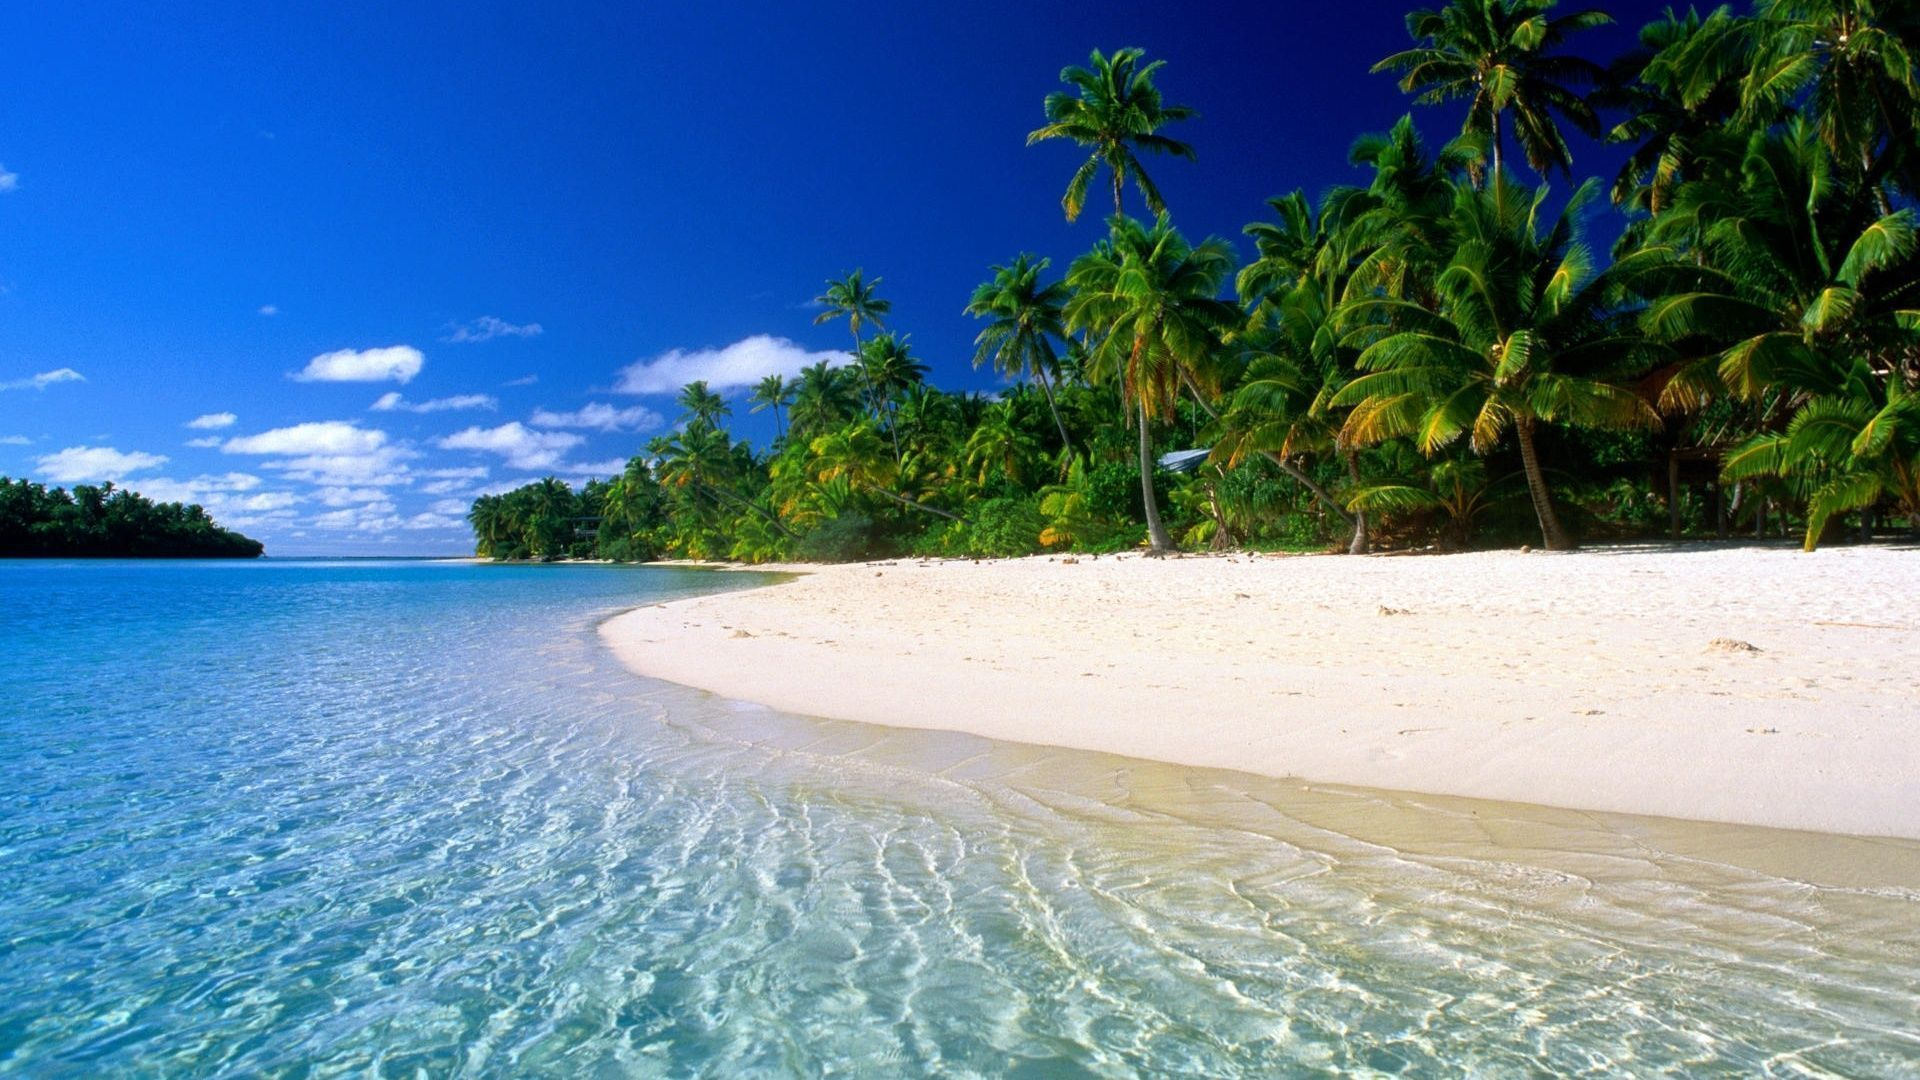 Cool Beach Backgrounds: Find Best Latest Cool Beach